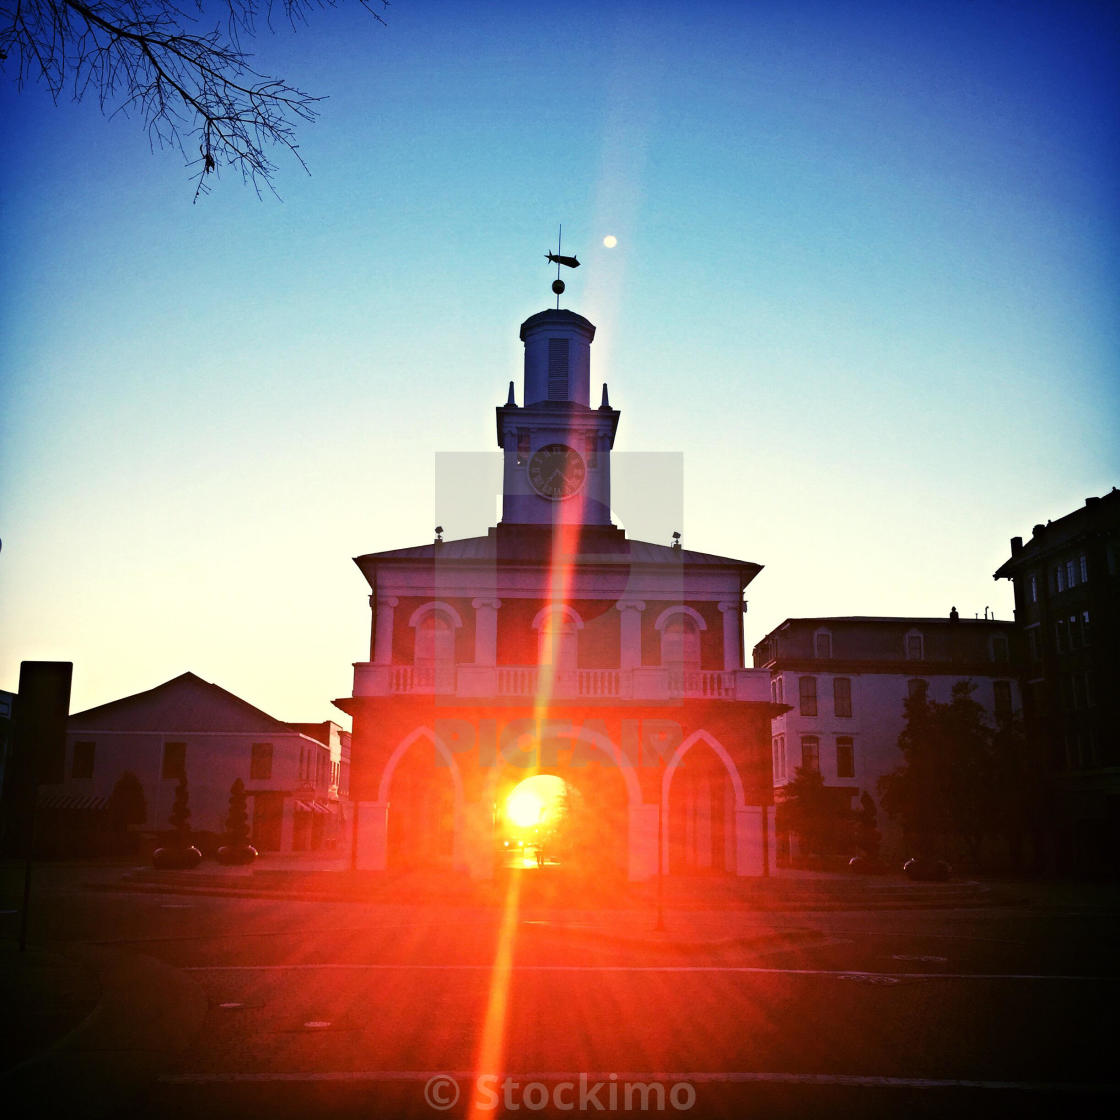 """The sun rises through the Fayetteville, NC Markethouse"" stock image"